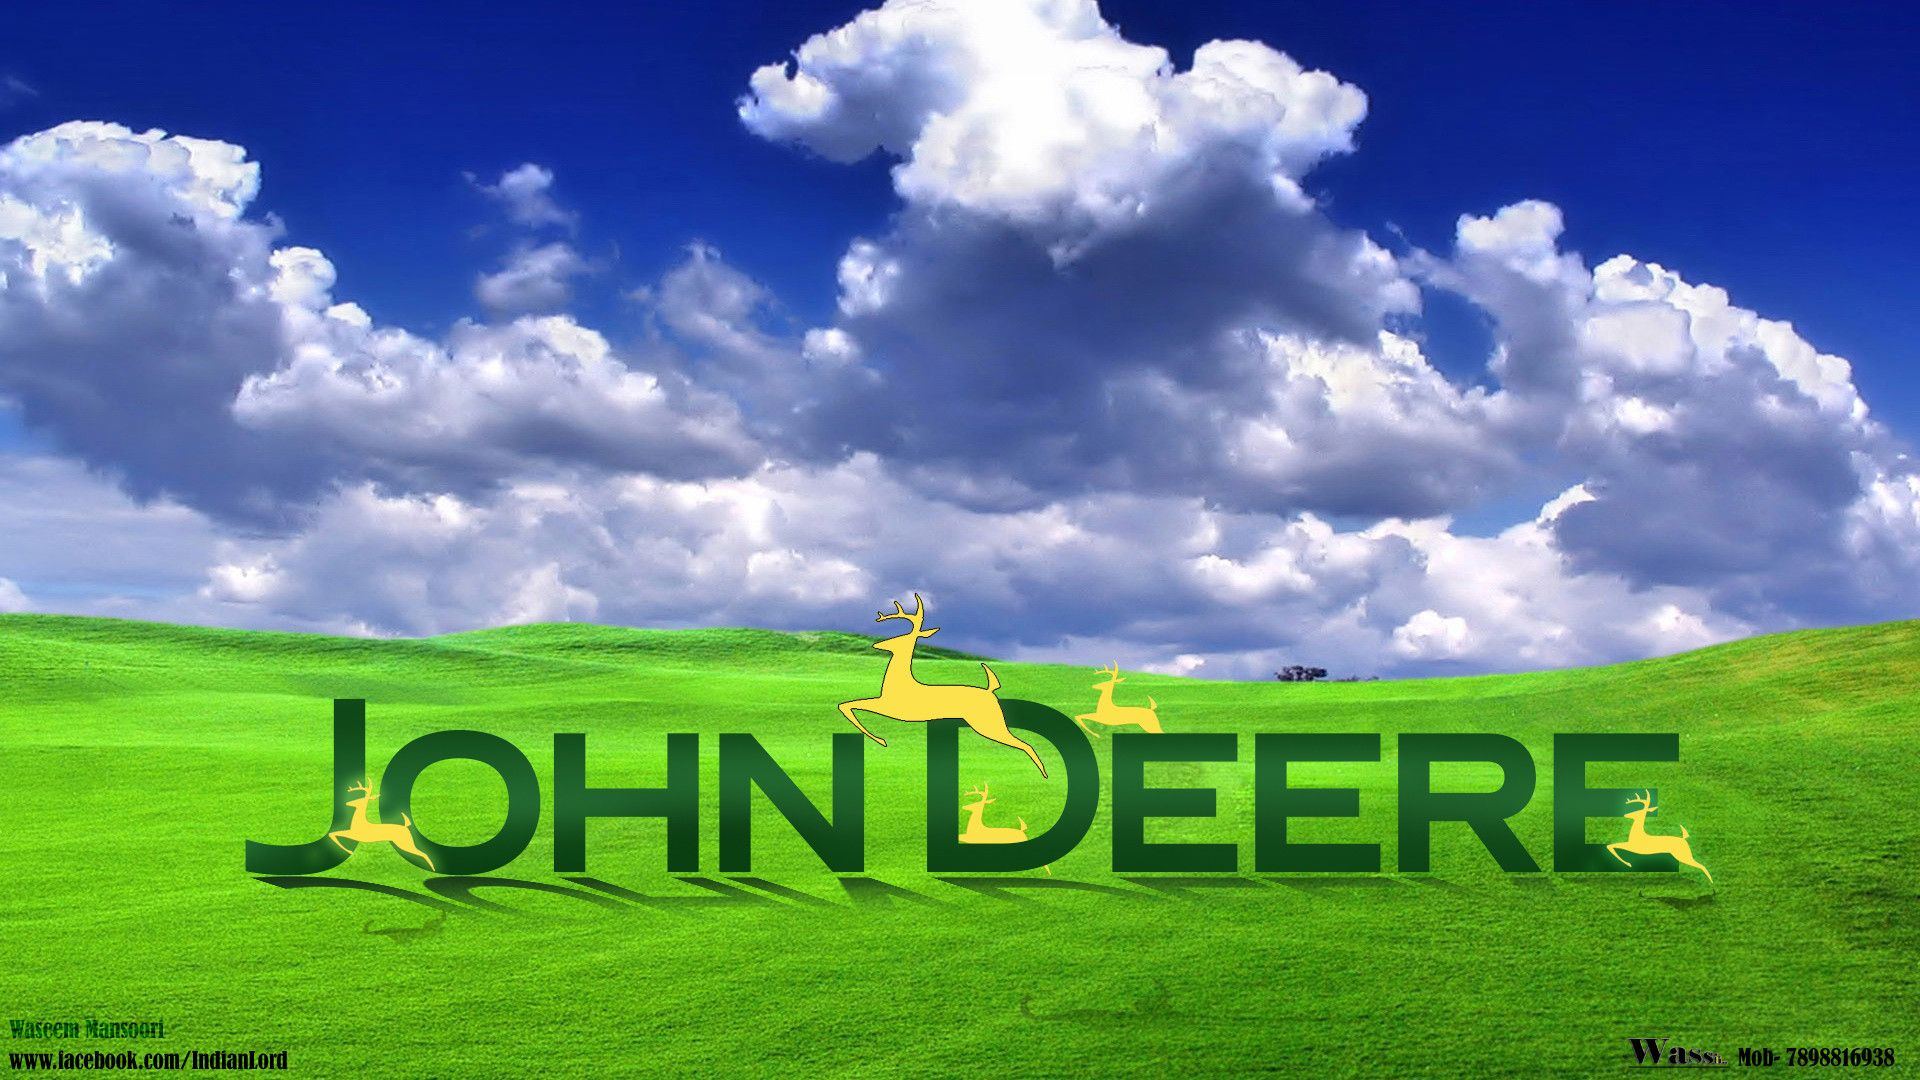 john deere desktop wallpaper wwwwallpaper free downloadcom 1920x1080